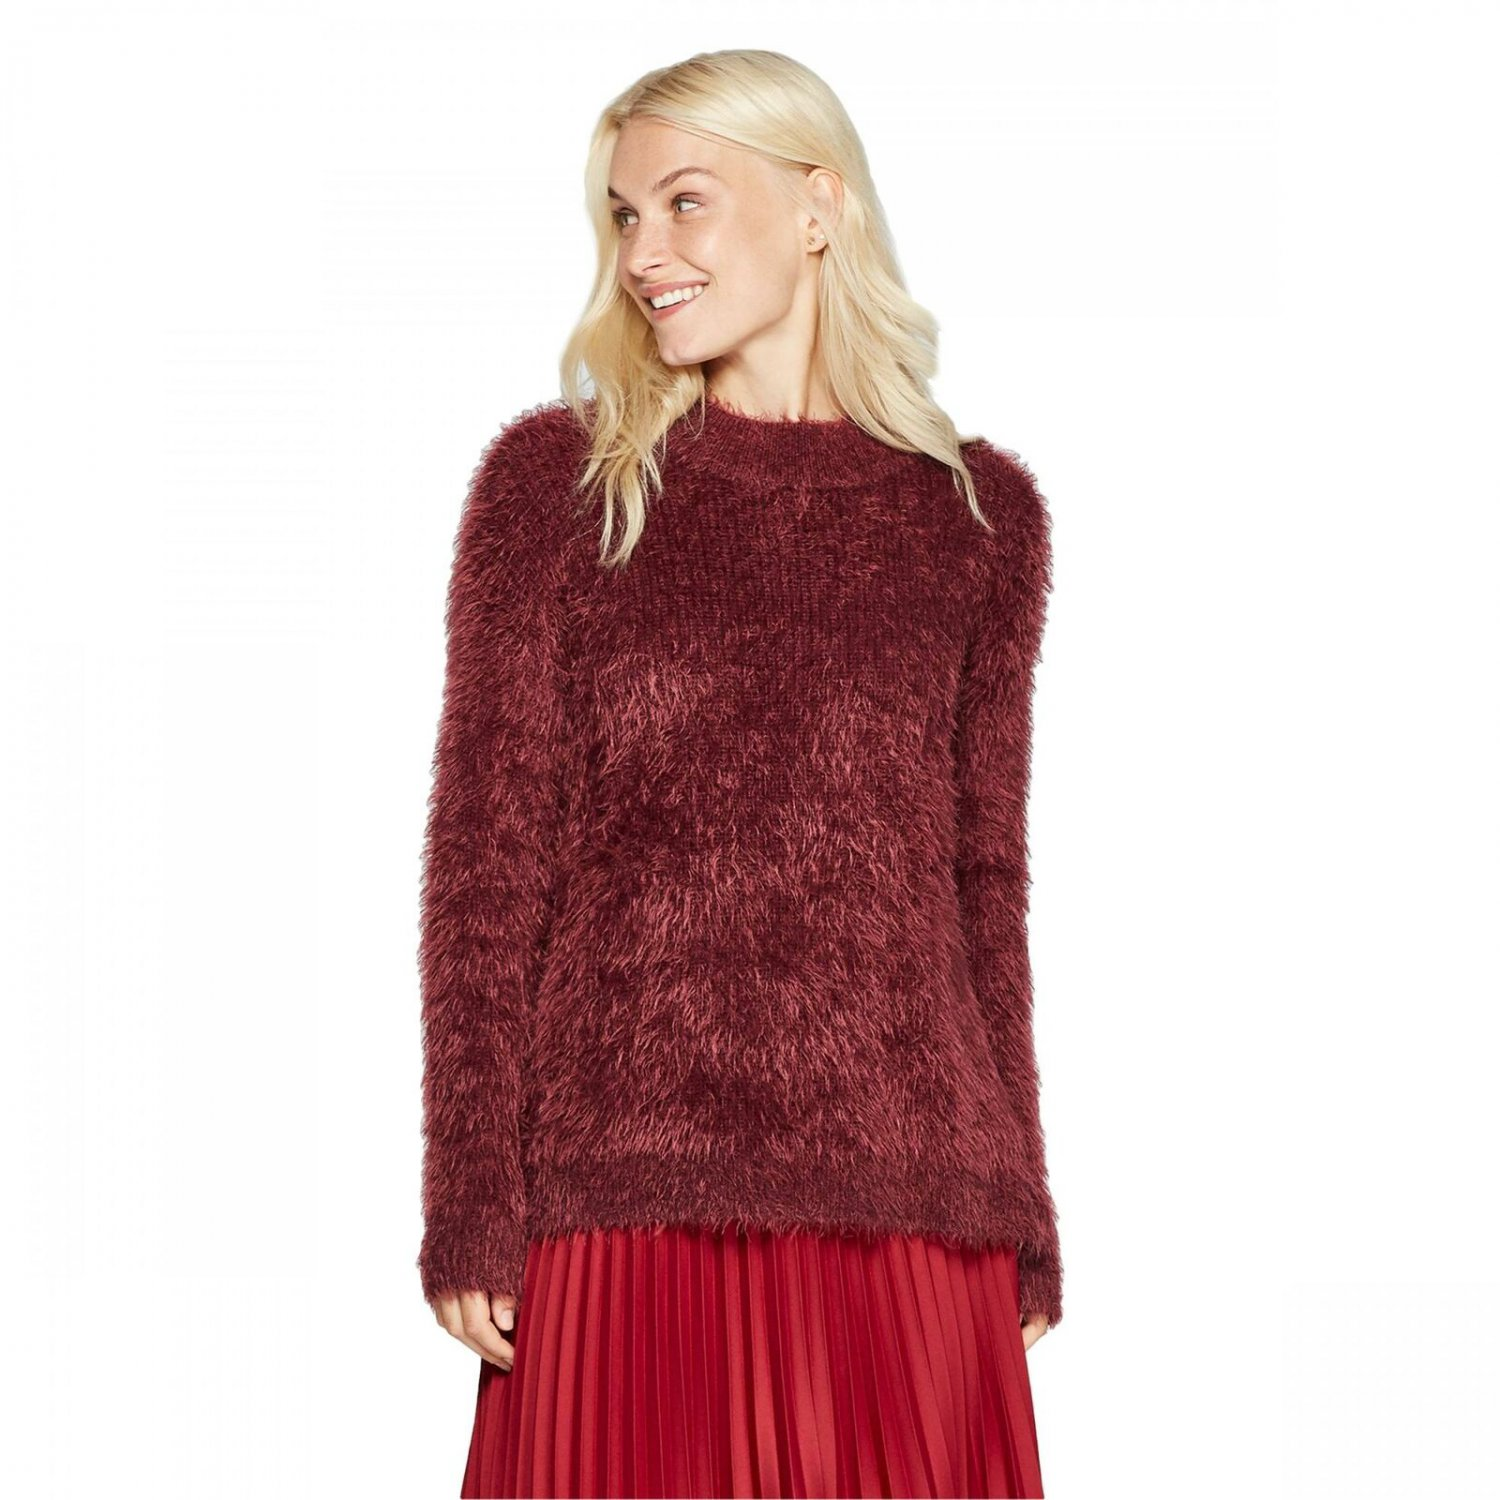 A New Day Women's Casual Fit Textured Mock Turtleneck Pullover Sweater XX-Large Burgundy